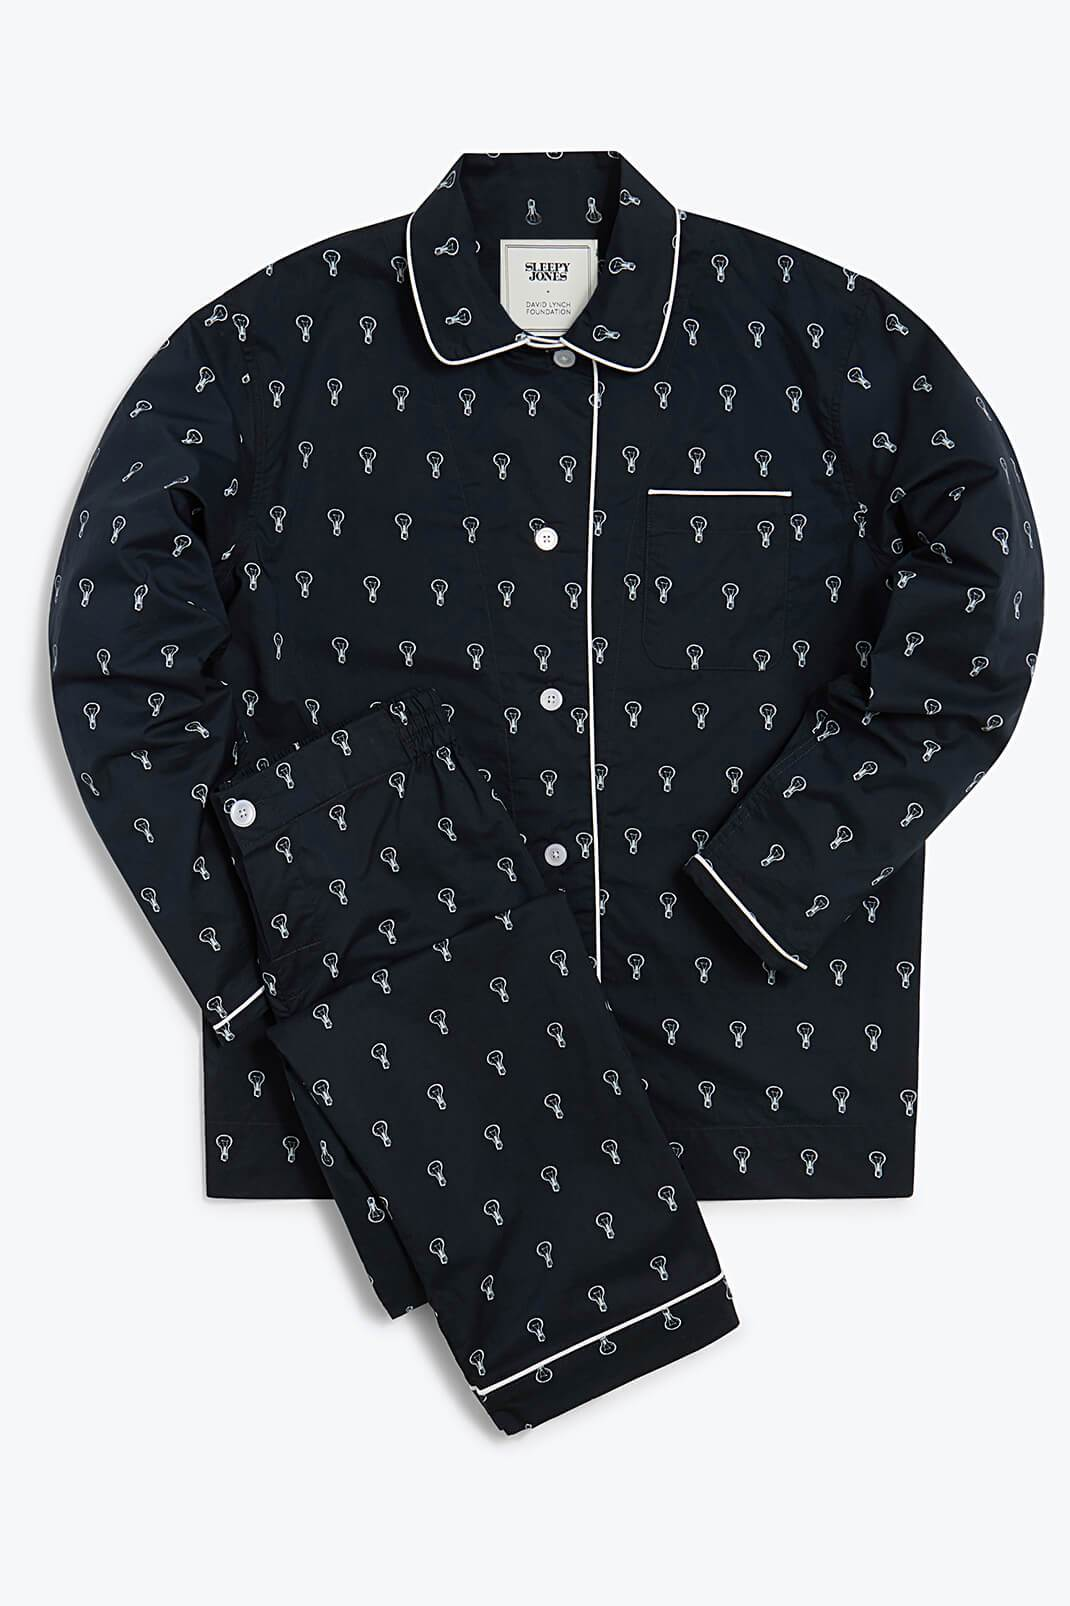 Sleepy Jones x The David Lynch Foundation Bishop Pajama Set